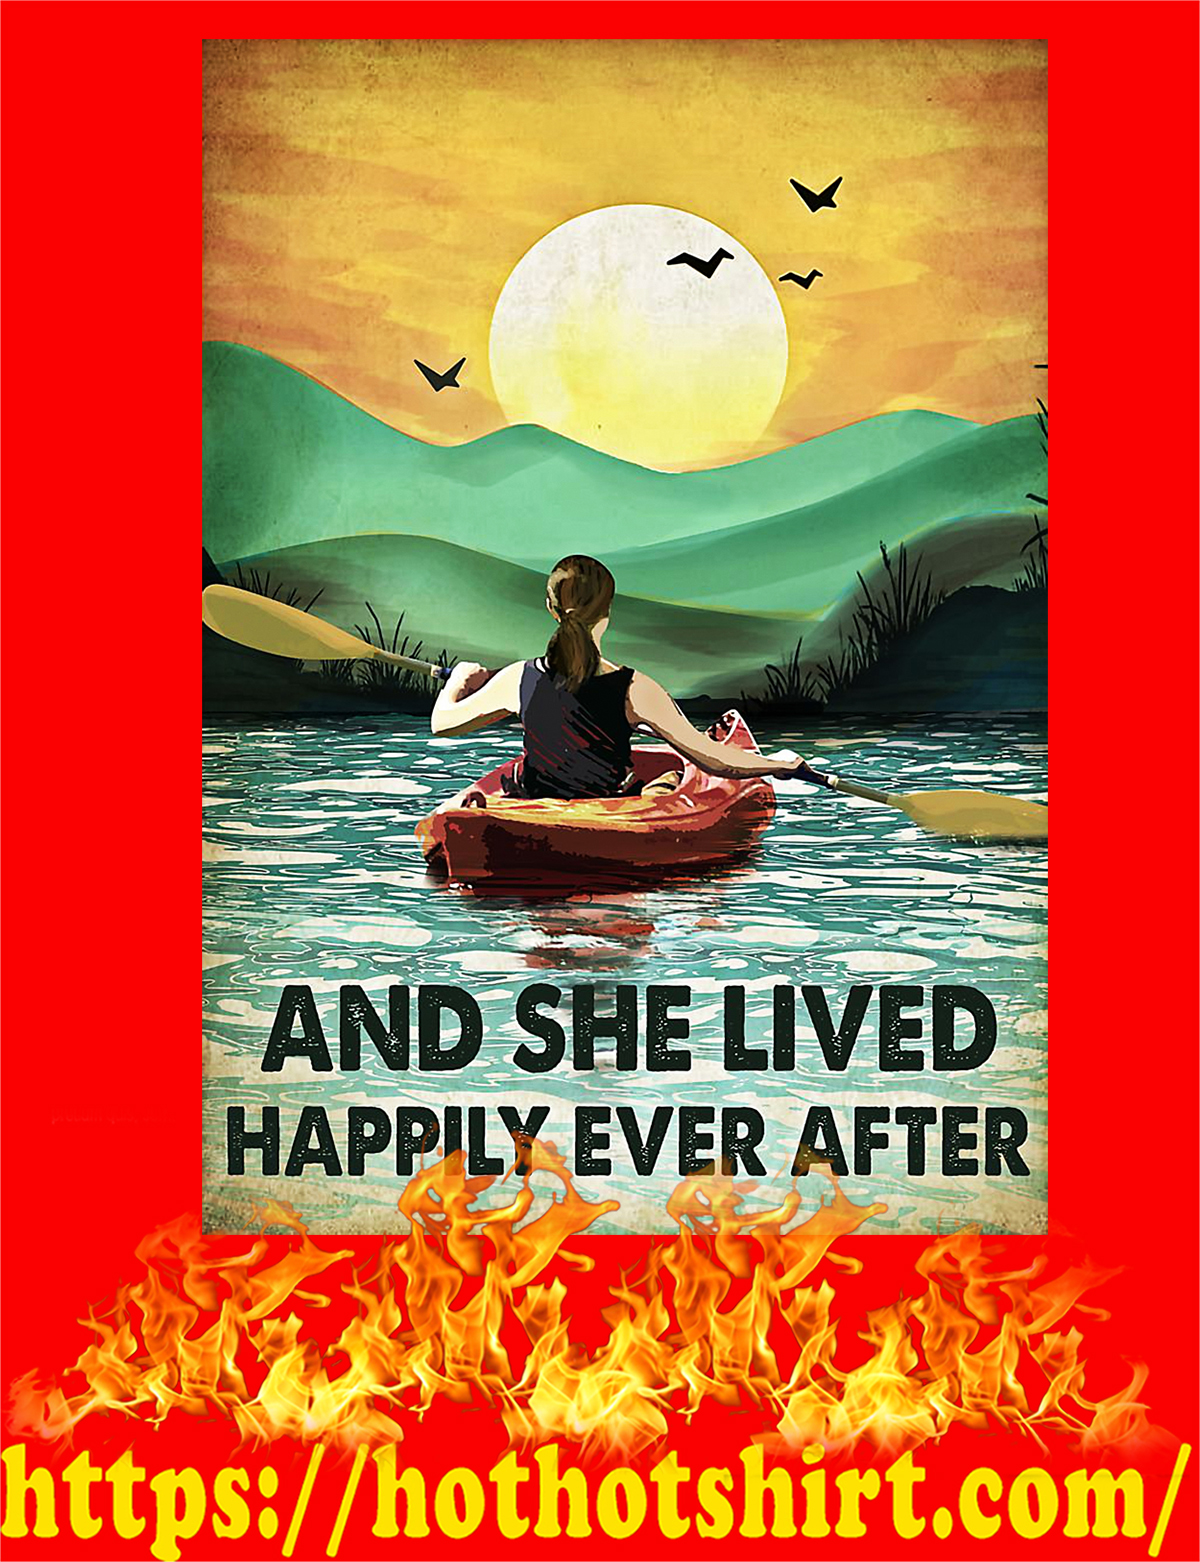 Rowing And she lived happily ever after poster